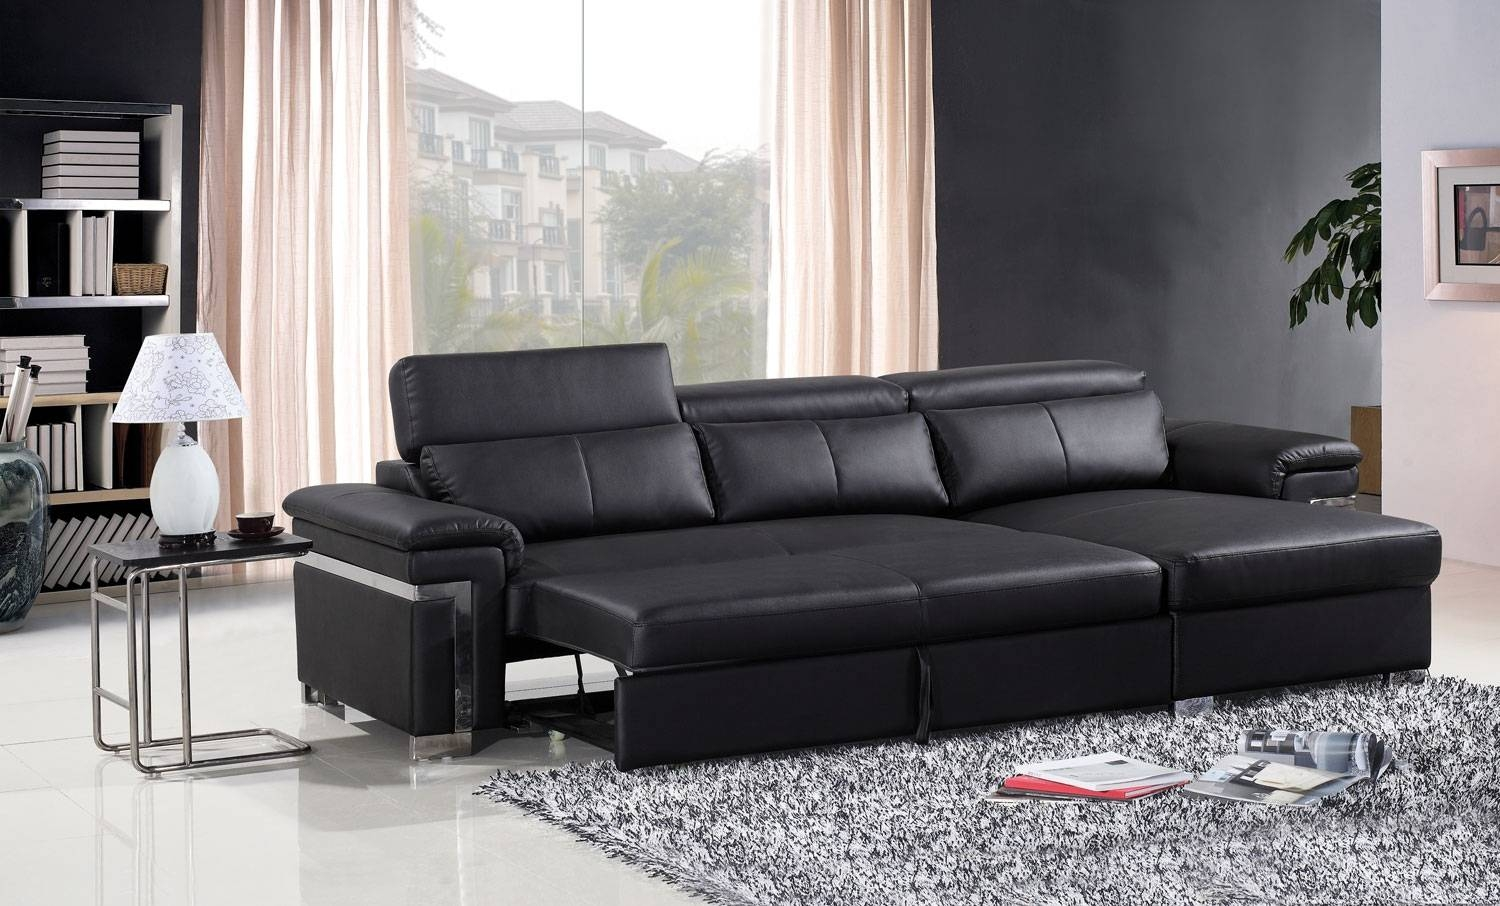 Sofa: Glamorous Leather Sofa Beds 2017 Design 2 Seater Leather with regard to Leather Sofa Beds With Storage (Image 28 of 30)